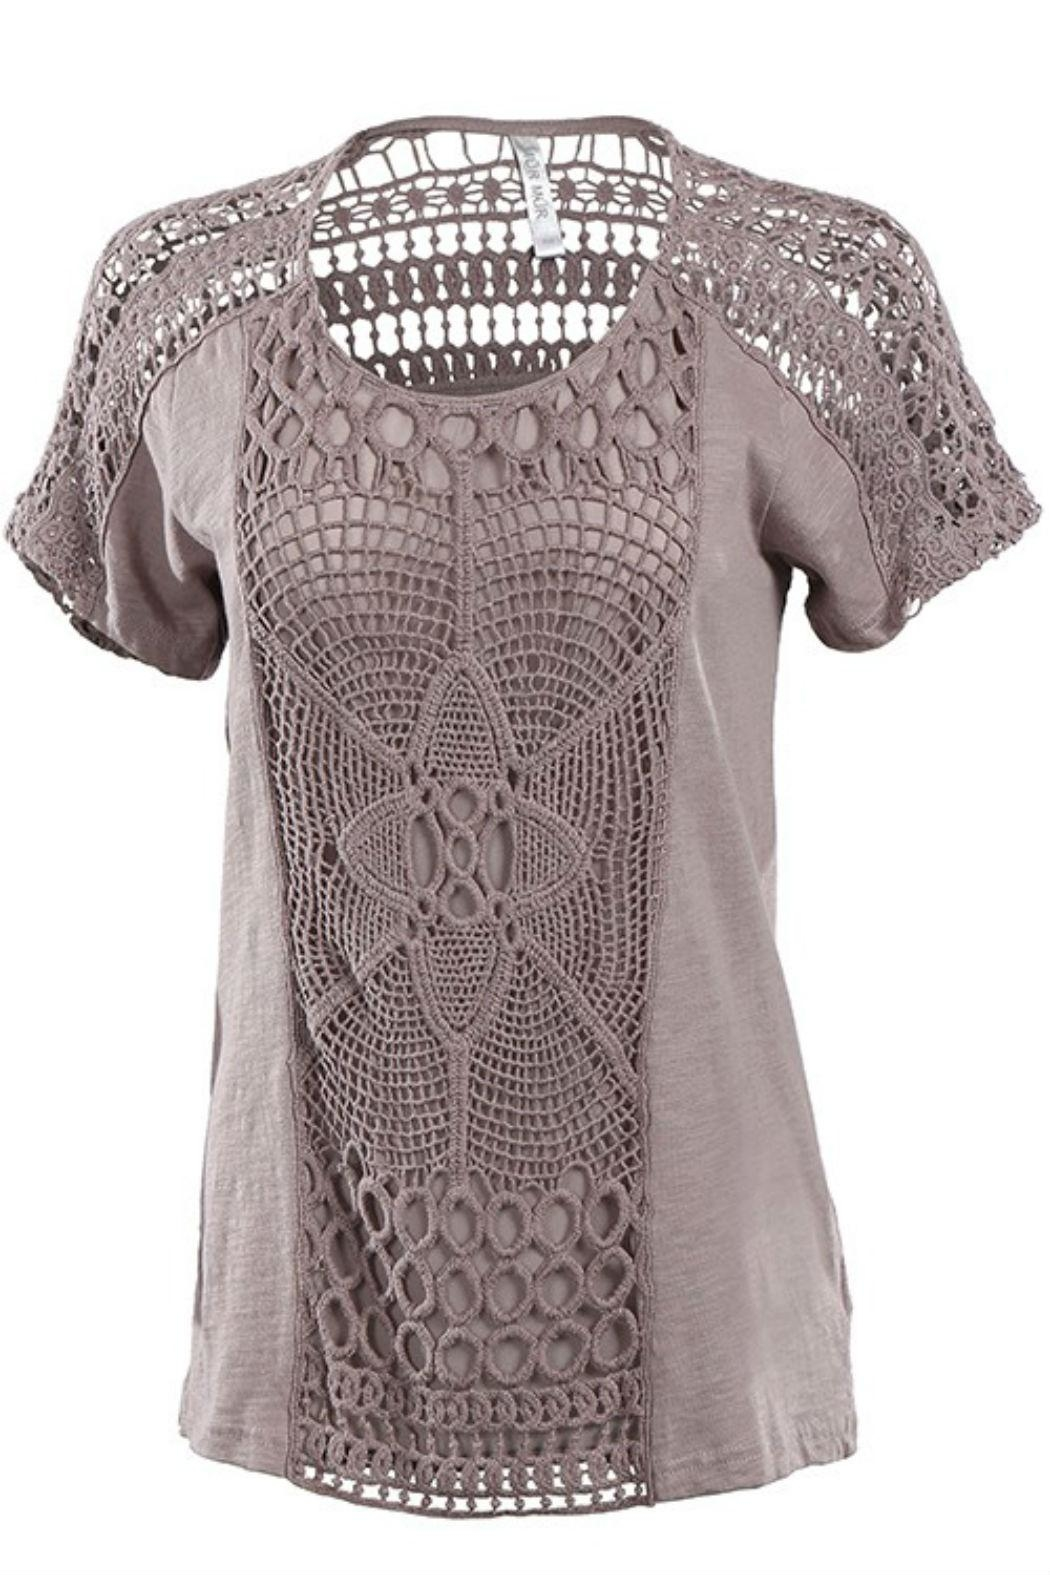 Mur Dune Crochet Top - Front Cropped Image